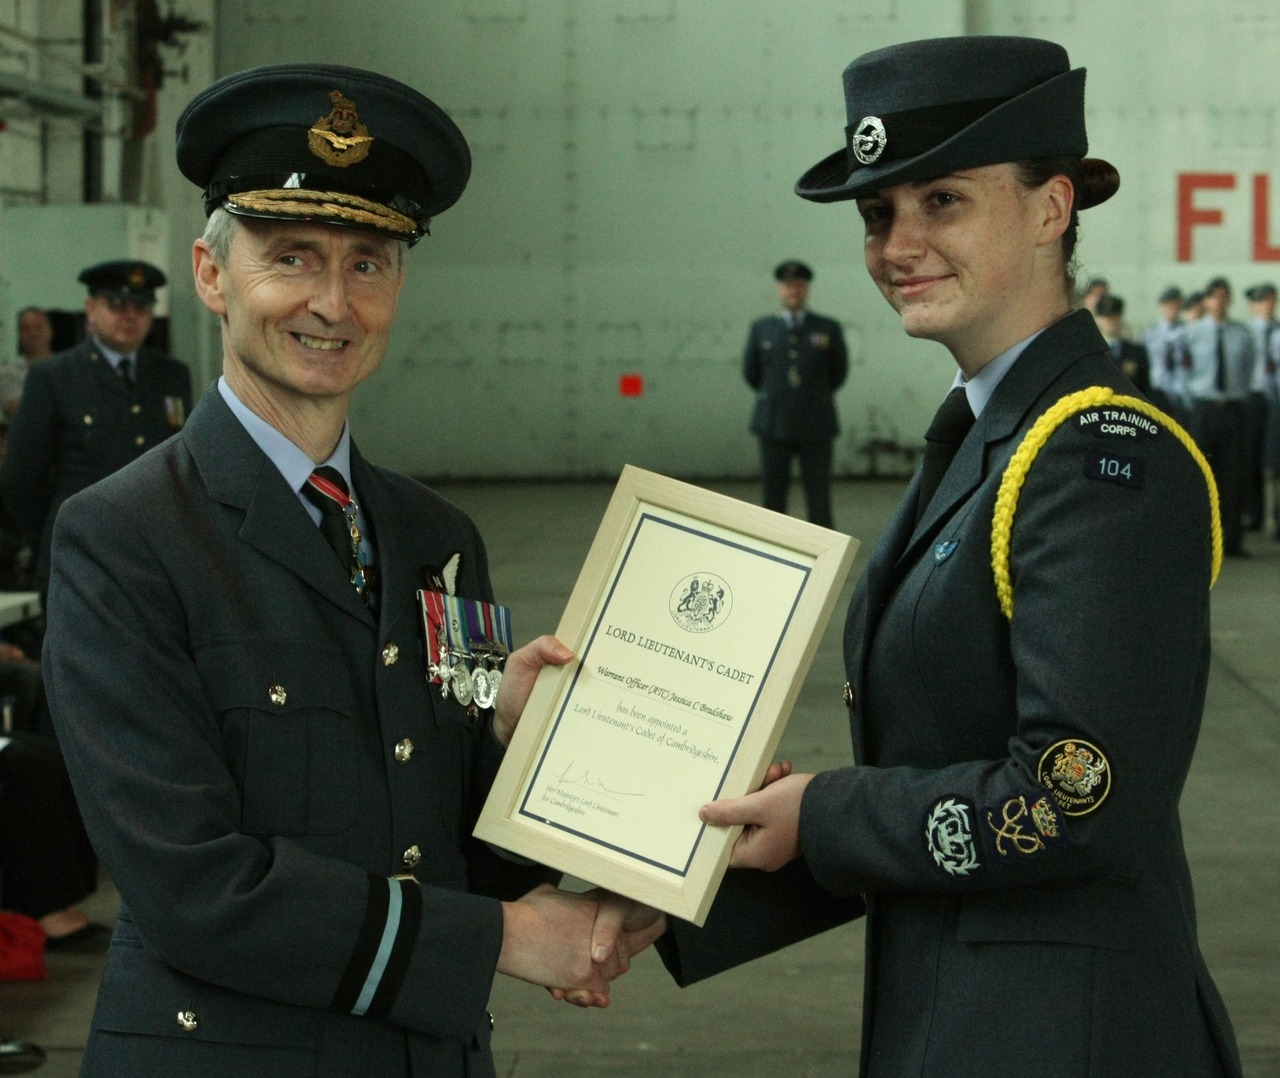 "Honour for Duke of Westminster Air Cadet  An Air Cadet from 104 (City of Cambridge) Squadron has been formally appointed as the Lord Lieutenants Cadet for Cambridgeshire.  Cadet Warrant Officer Jess Bradshaw received the honour from former Commandant Air Cadets, Air Commodore Gordon Moulds during the recent Wing Parade held at RAF Wyton.  The role of Lord-Lieutenant involves presiding at various civic and social events and presenting medals and awards on behalf of The Queen.  As Lord Lieutenants Cadet, Cadet Warrant Officer Bradshaw will attend various functions to assist the Lord Lieutenant as he executes his duty and has already greeted Her Majesty The Queen on her arrival at Burghley House as part of her diamond jubilee tour.  Since joining the Air Cadets Cadet Warrant Officer Bradshaw has gained all three levels of the Duke of Edinburgh's Award, BTEC awards, first aid qualifications, completed the Nijmegan military marches, gained a communicators badge and completed a gliding scholarship plus much more.  Most recently she discovered she had been nominated for the Cambridgeshire Constabulary Young People of the Year awards known as the YOPEYs and is a finalist in the Duke of Westminster award.  With this she is currently  in South Africa for three weeks in July.   Cadet Warrant Officer Jess Bradshaw said   ""To be selected from all the cadets across Cambridgeshire for this prestigious honour is really exciting and one of the highlights of my cadet career.  Representing the Corps, my Squadron and I in this way is a reason to be very proud""  Flight Lieutenant Richard Slack added  ""What Jess has achieved is truly remarkable and serves as good motivation to the younger cadets of what they can achieve if they are motivated and driven."""